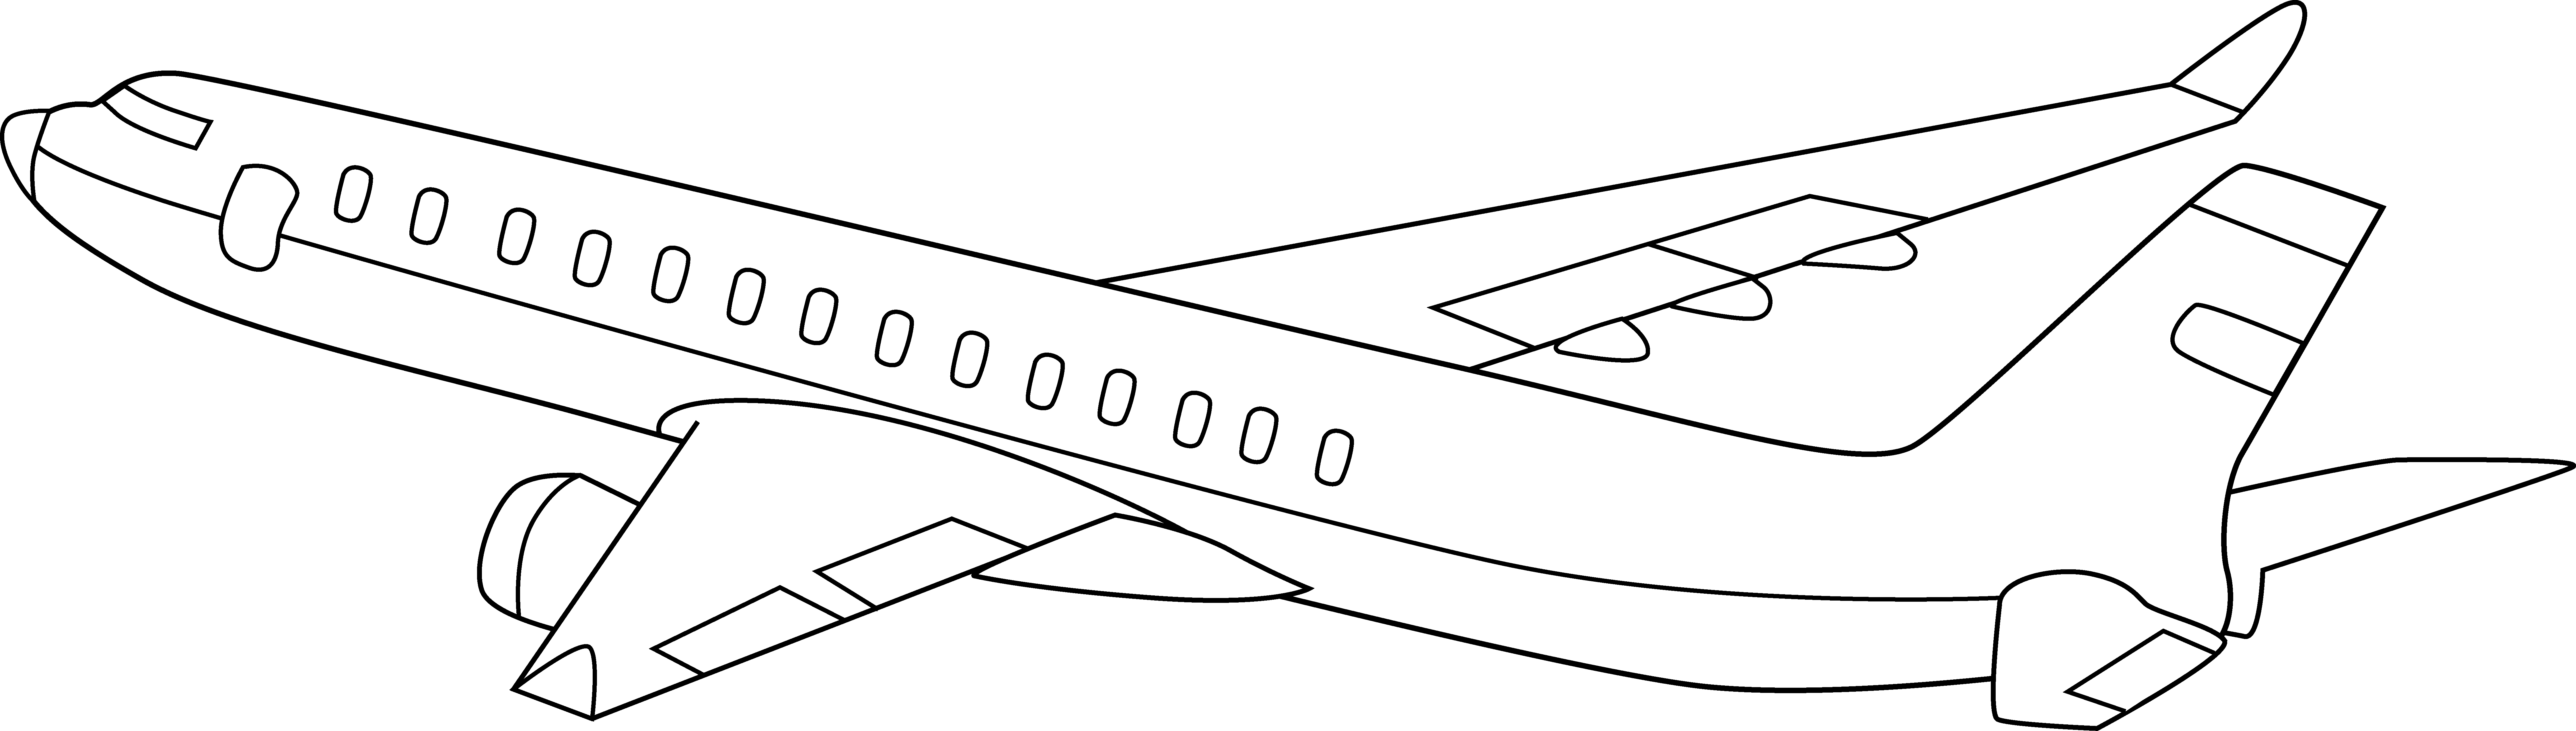 Airplane clipart facing left image download Free Airplane Outline, Download Free Clip Art, Free Clip Art on ... image download